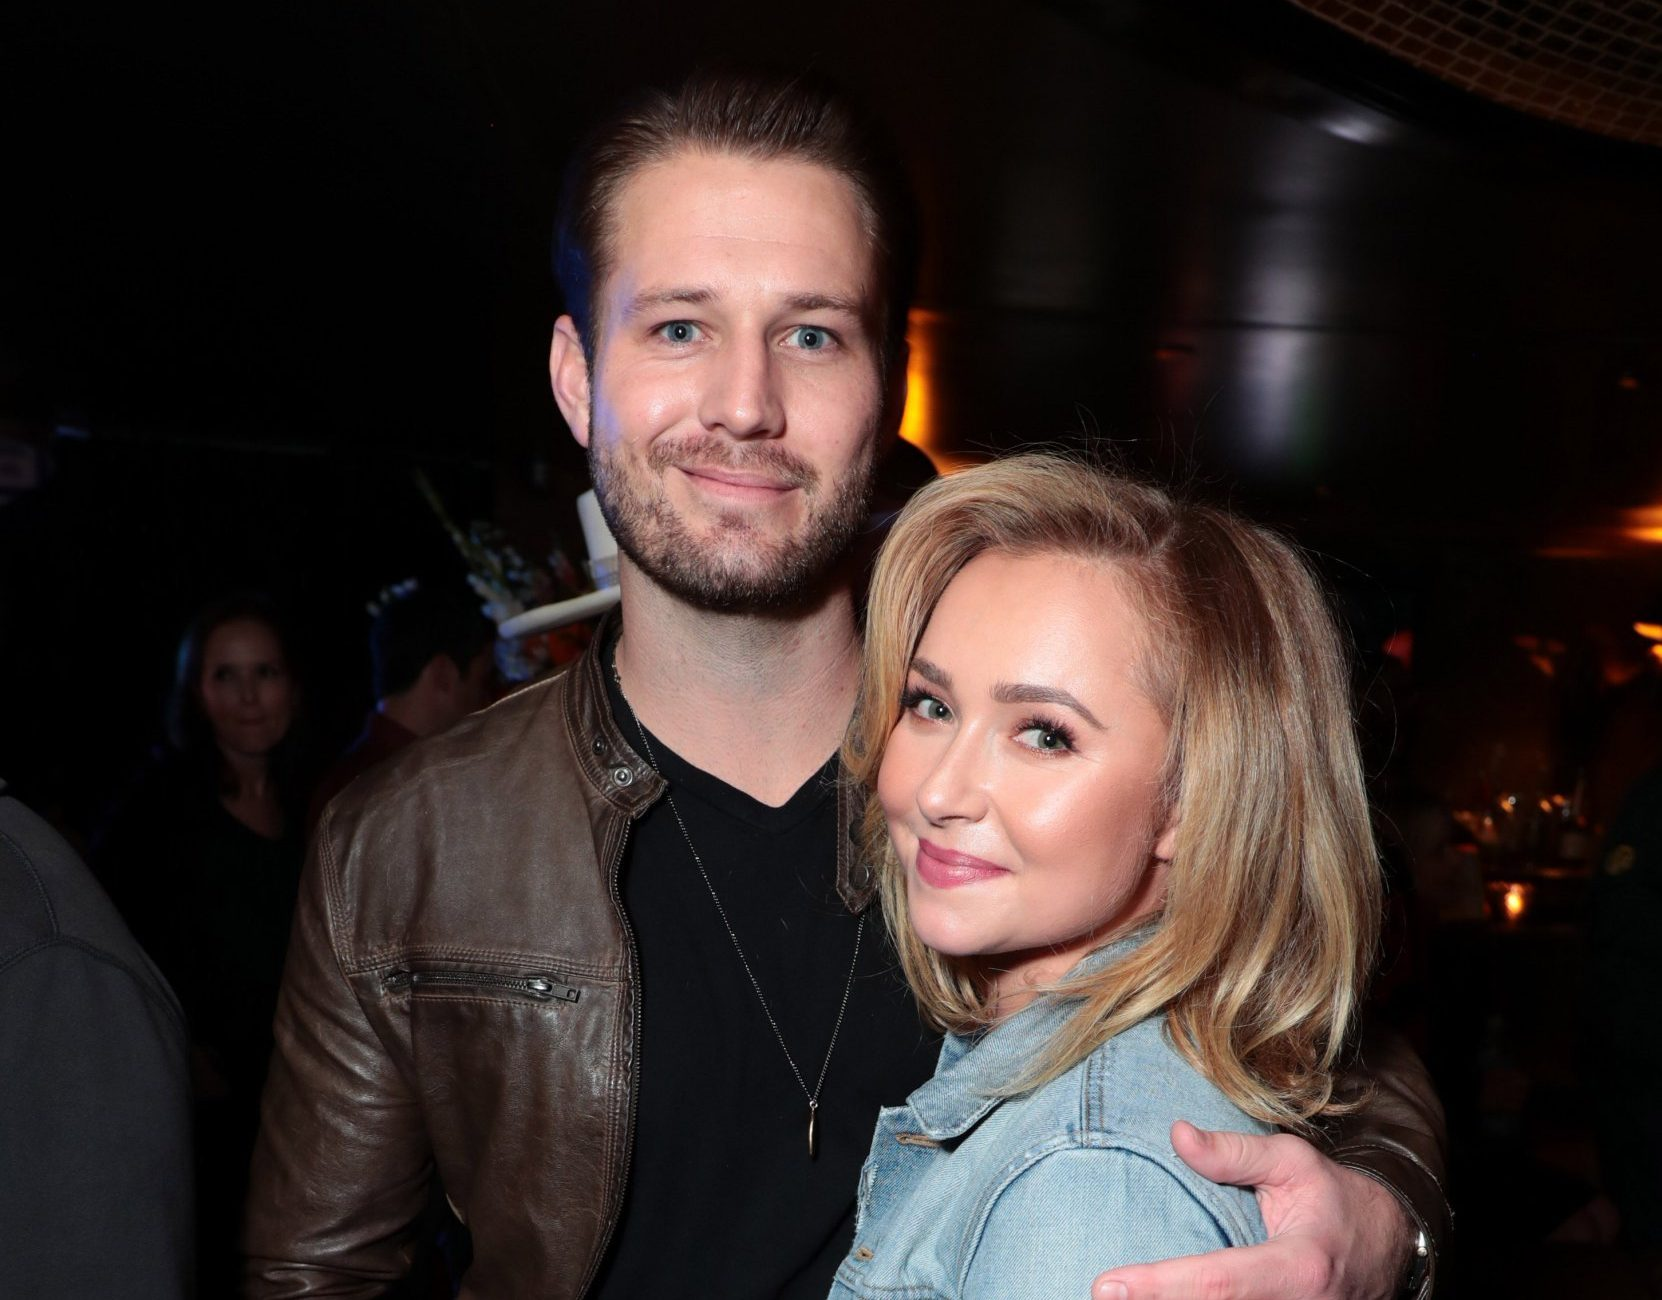 Hayden Panettiere's boyfriend 'arrested for domestic violence after night out together'